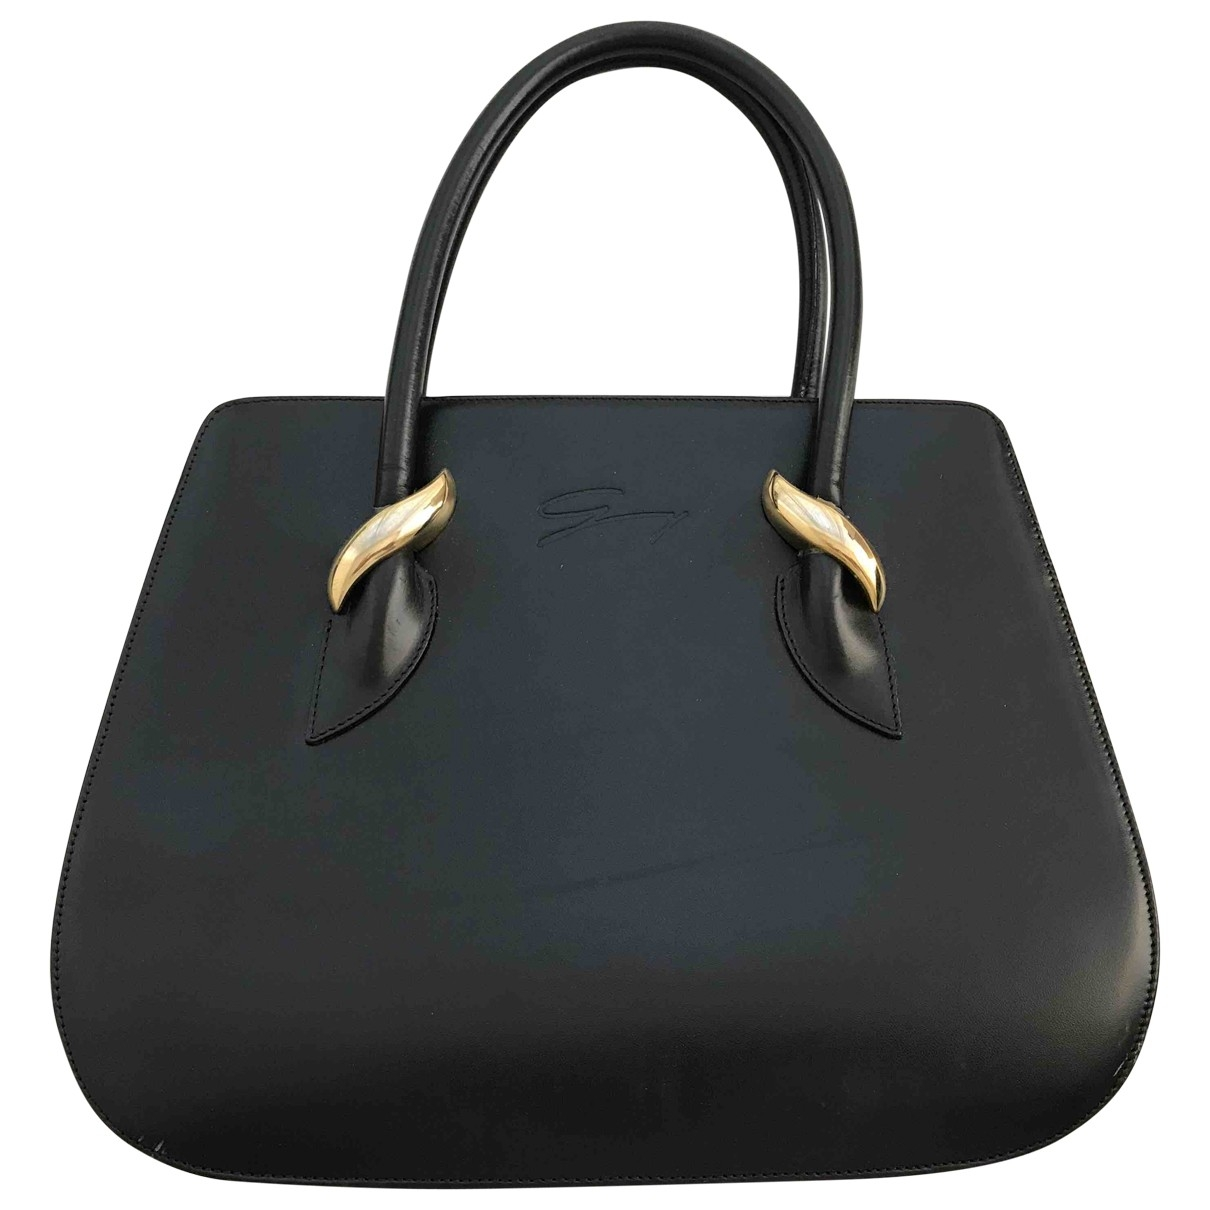 Genny \N Black Leather handbag for Women \N